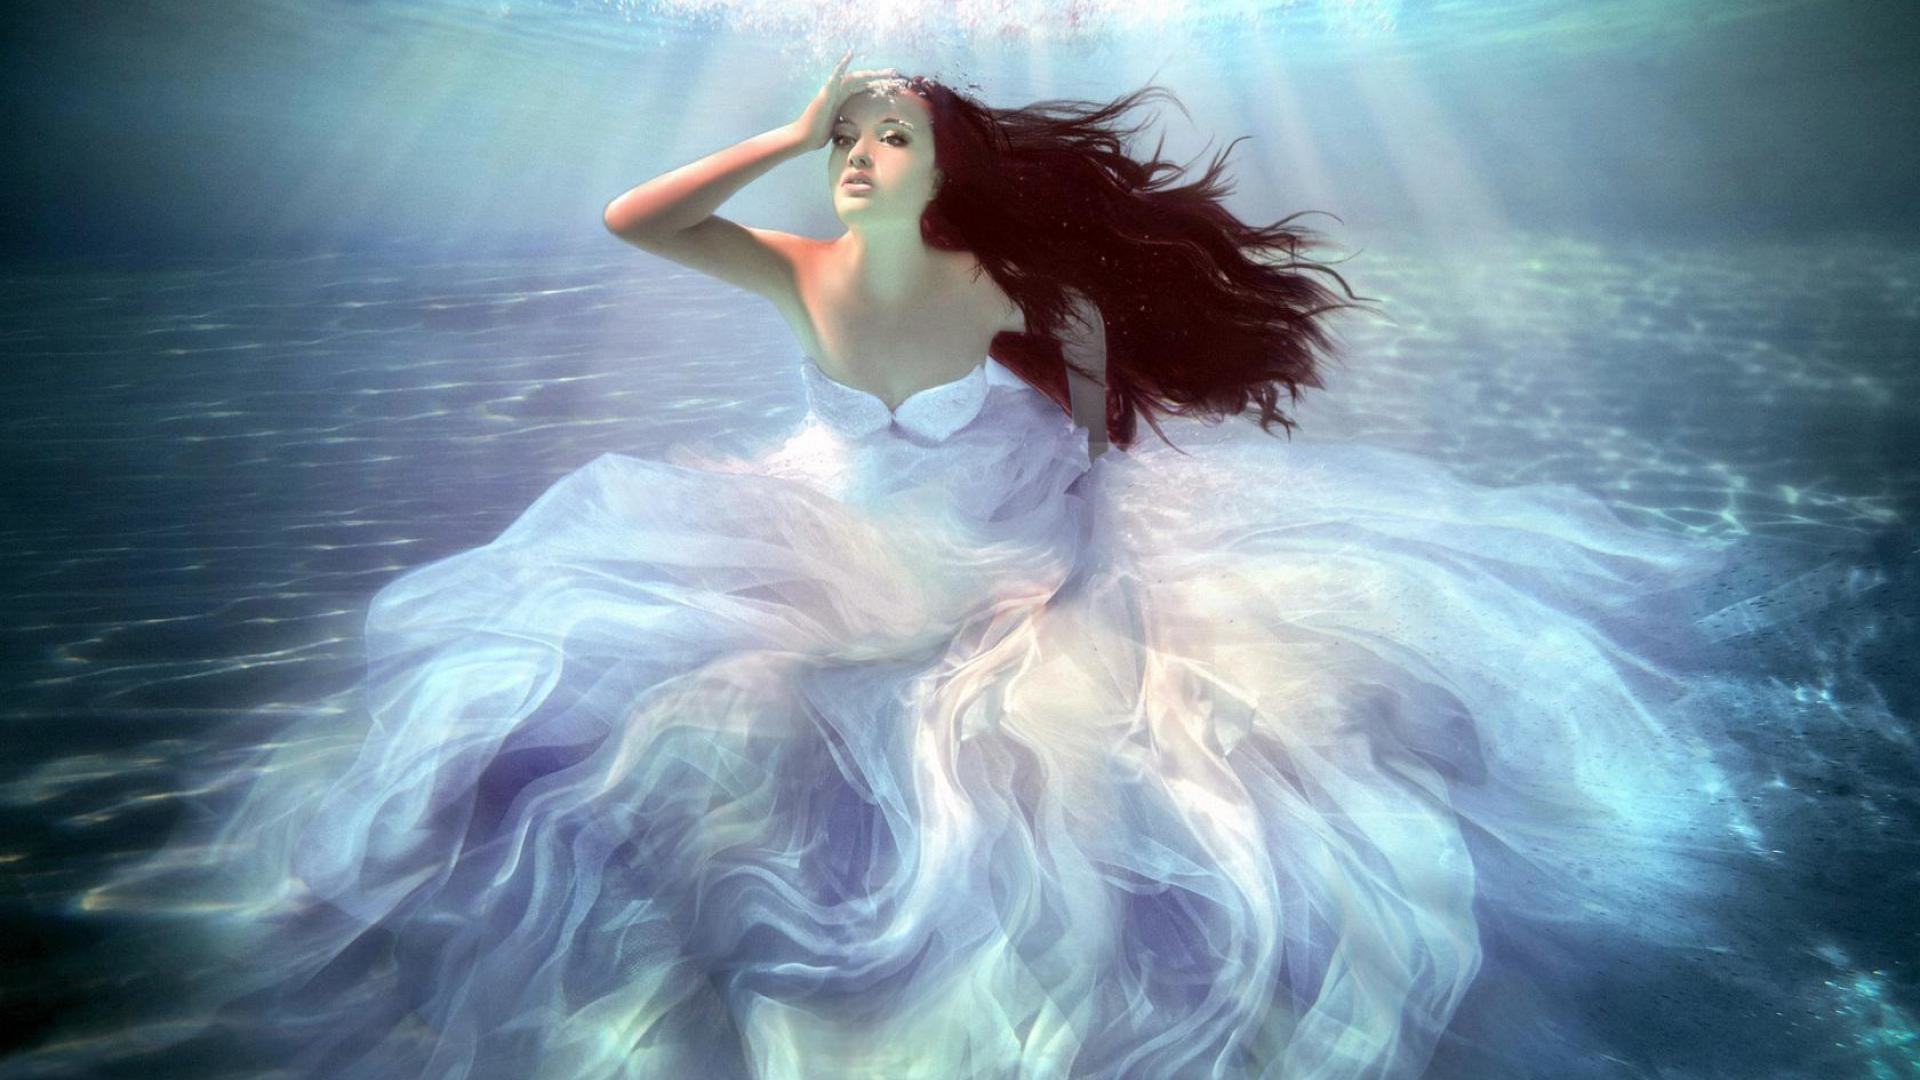 Mermaid Wallpaper Android Apps on Google Play 1920×1080 Mermaid Wallpaper  (41 Wallpapers)